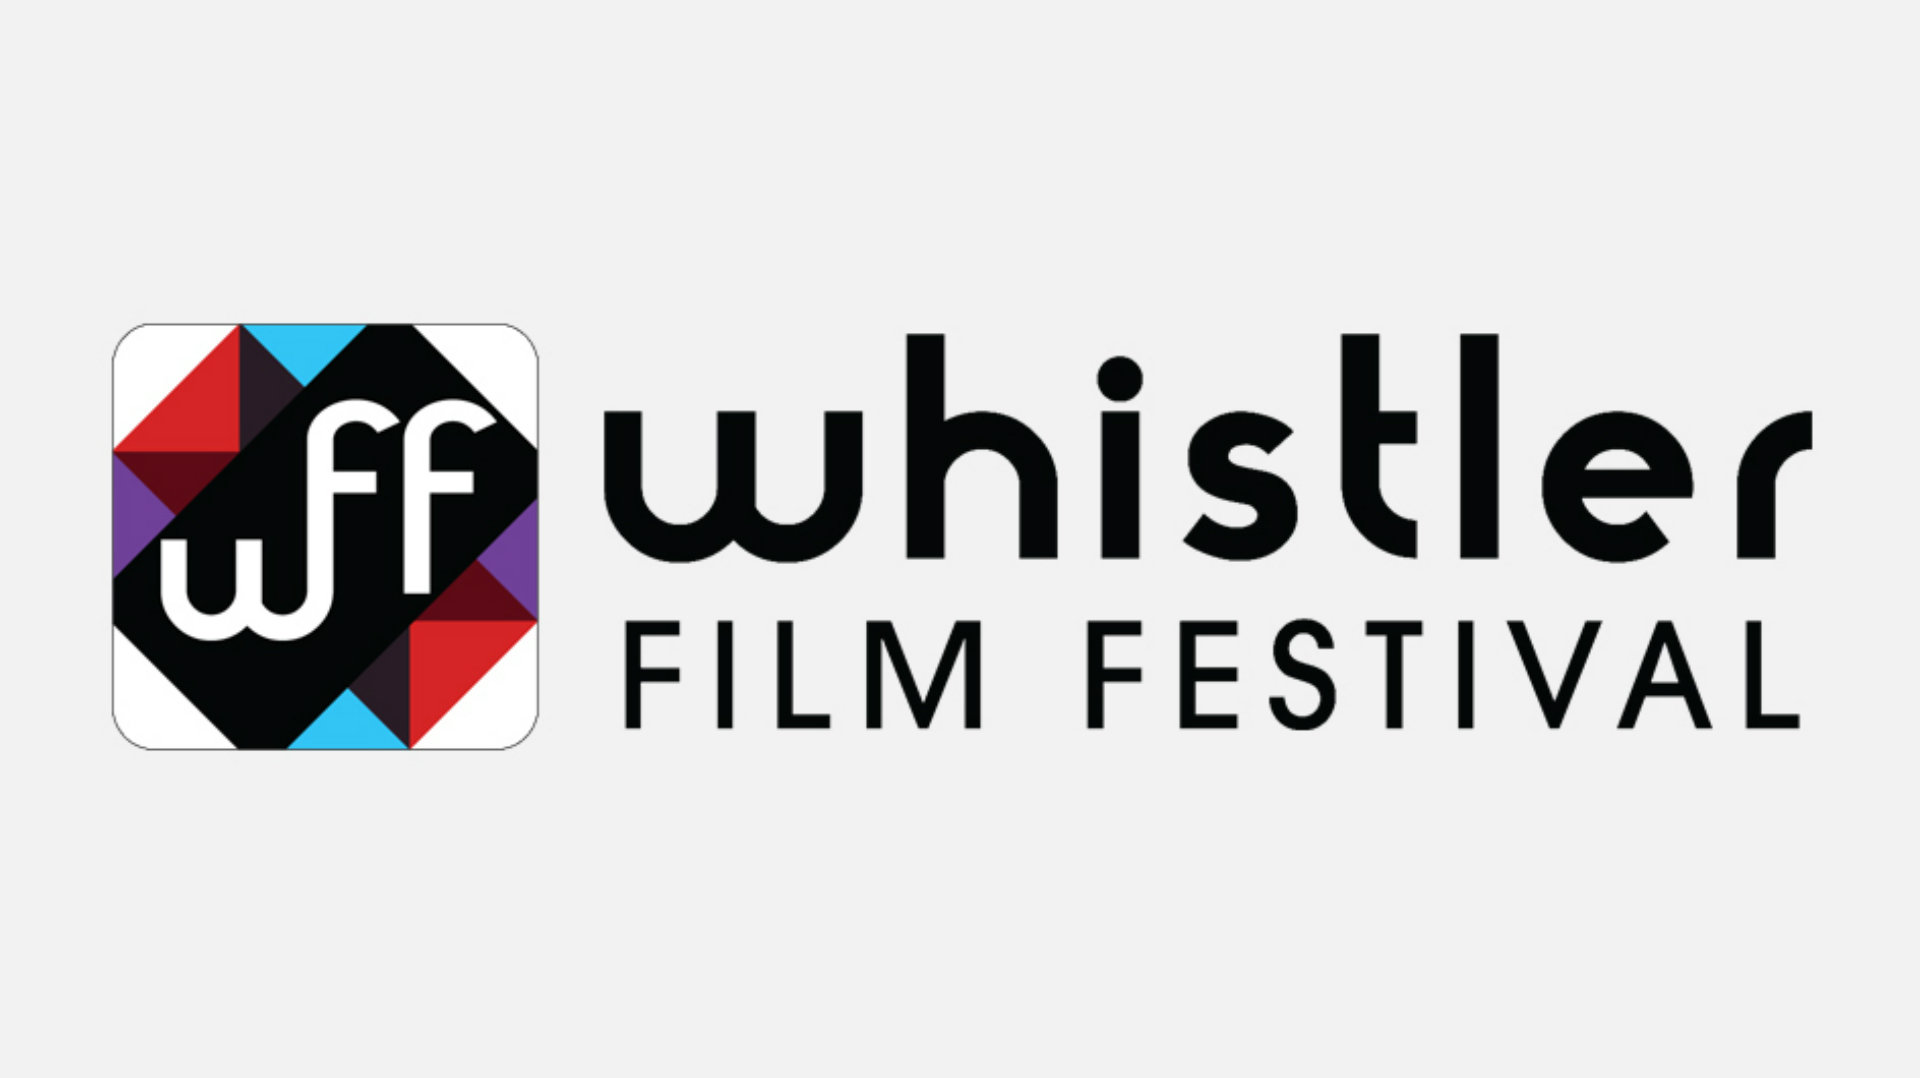 Whistler Film Festival Announces 2019 Line-up